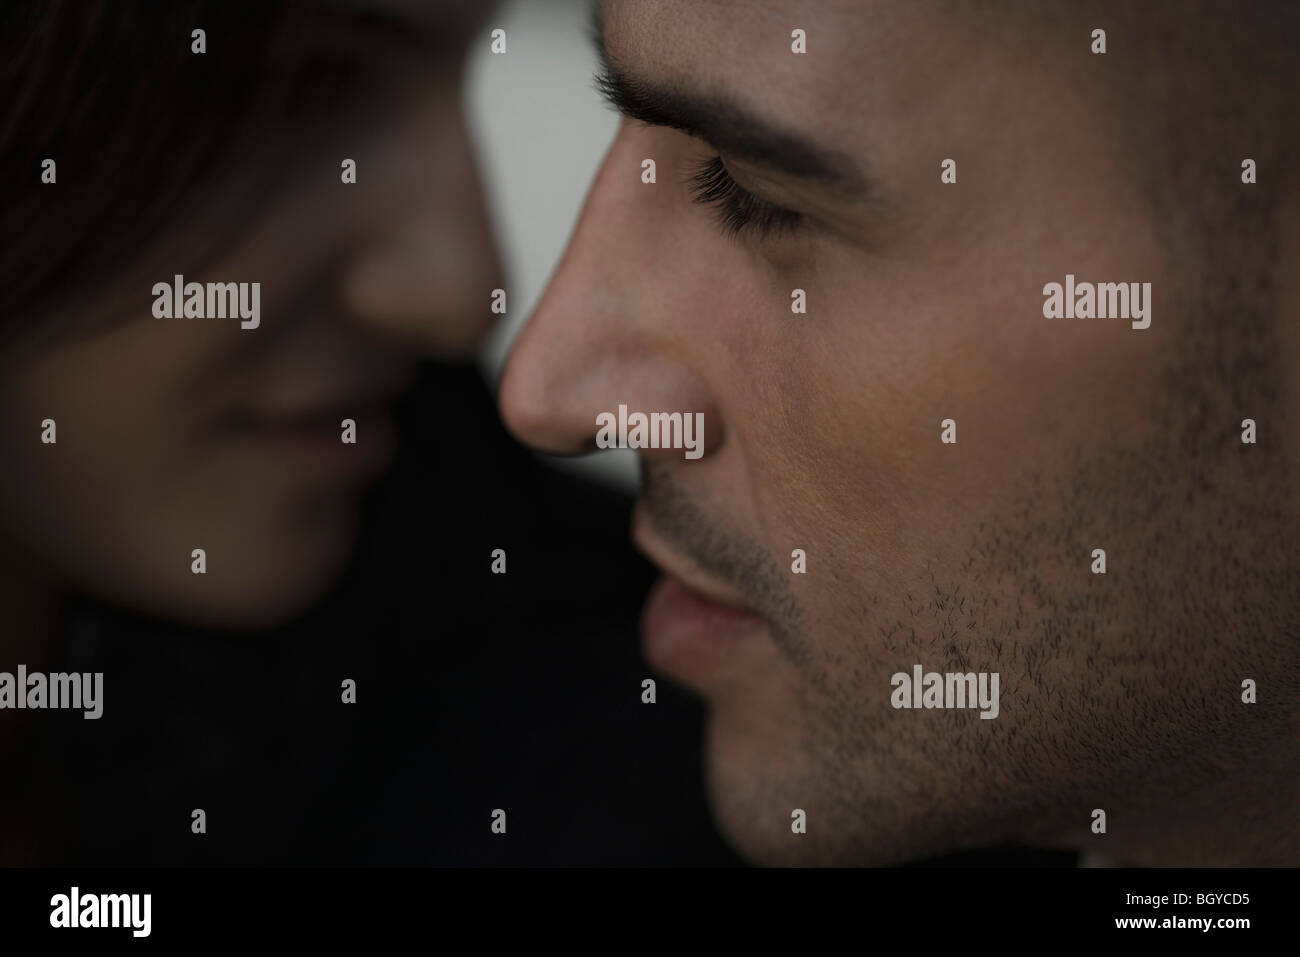 Couple face to face, focus on man's profile - Stock Image